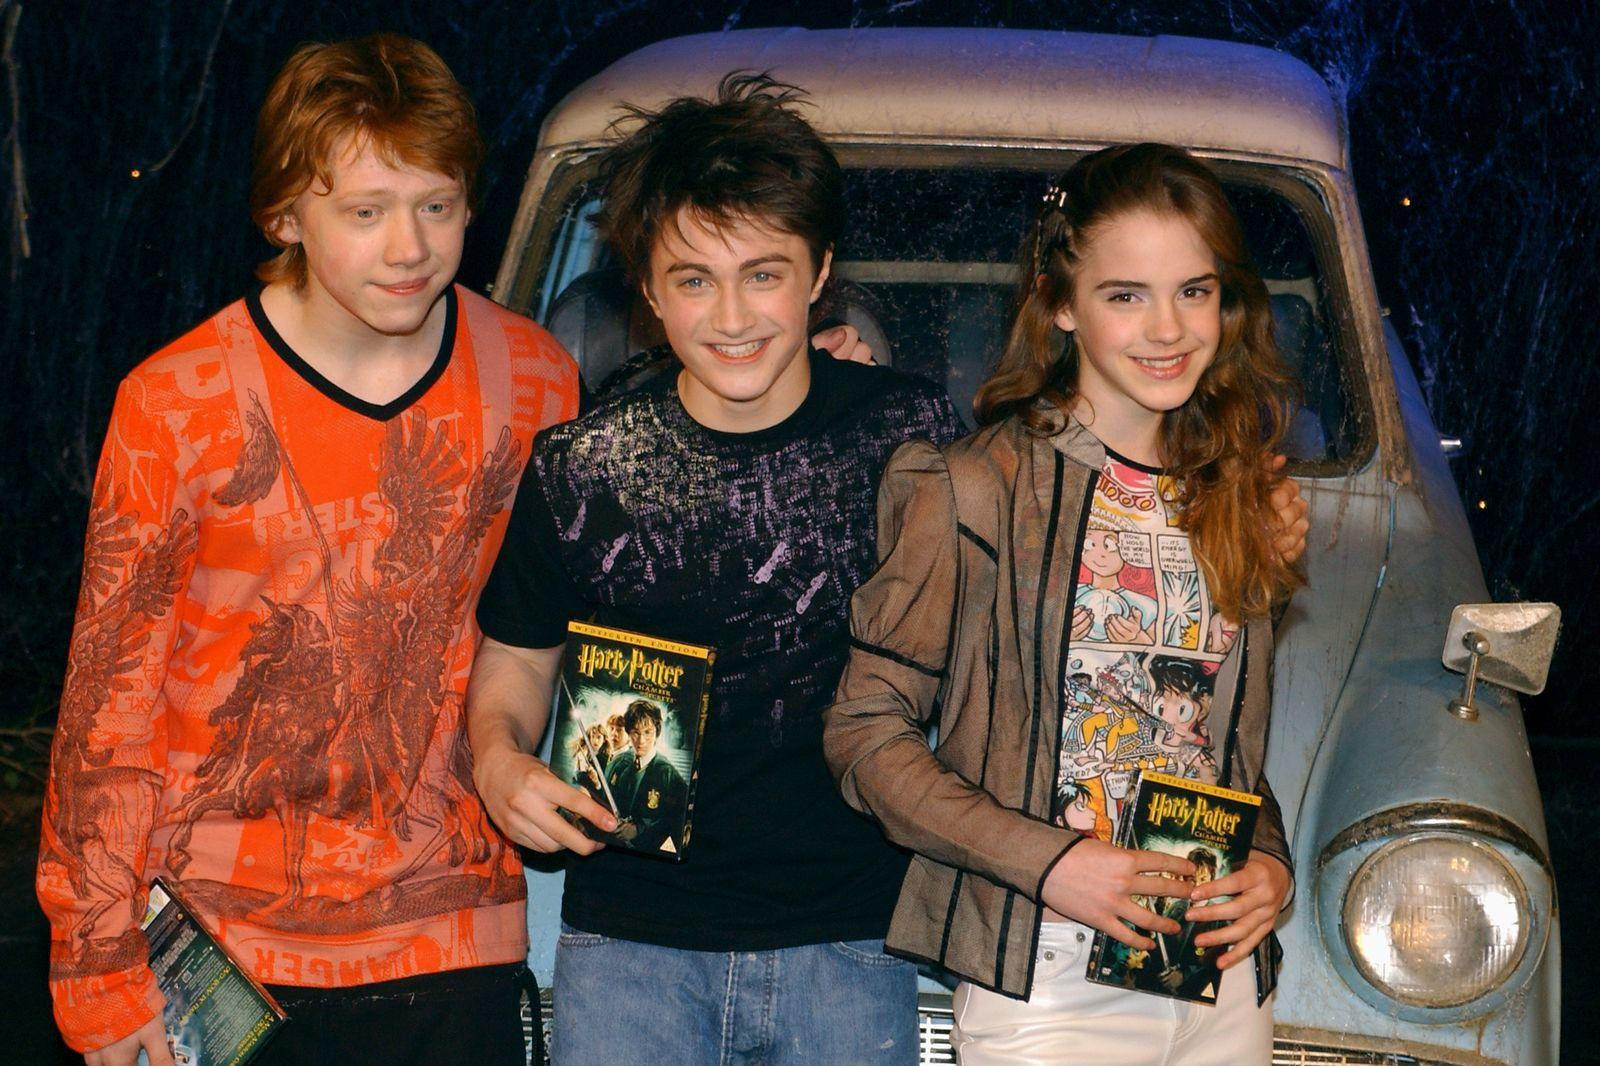 Struggles The Harry Potter Cast Had to Deal with on Set